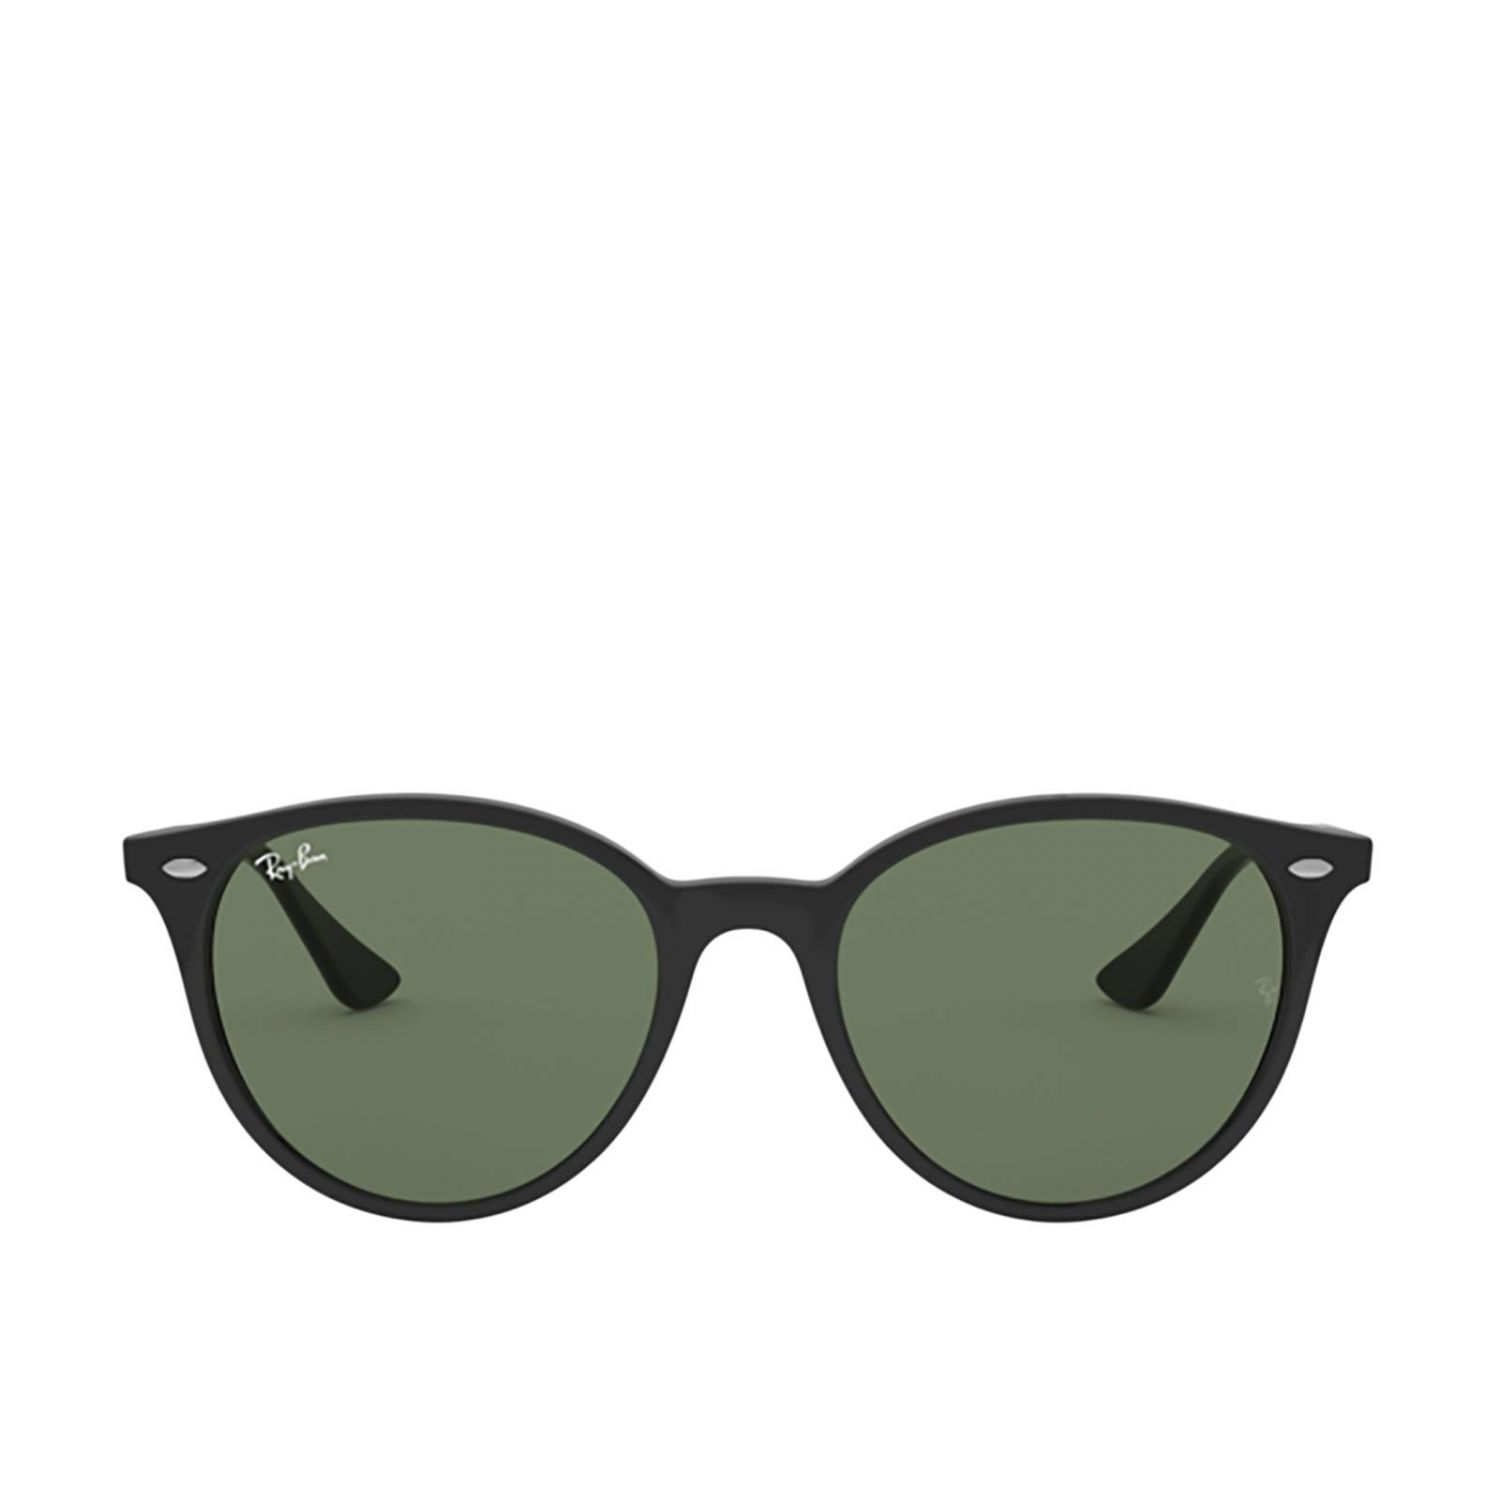 Glasses women Ray-ban black 2